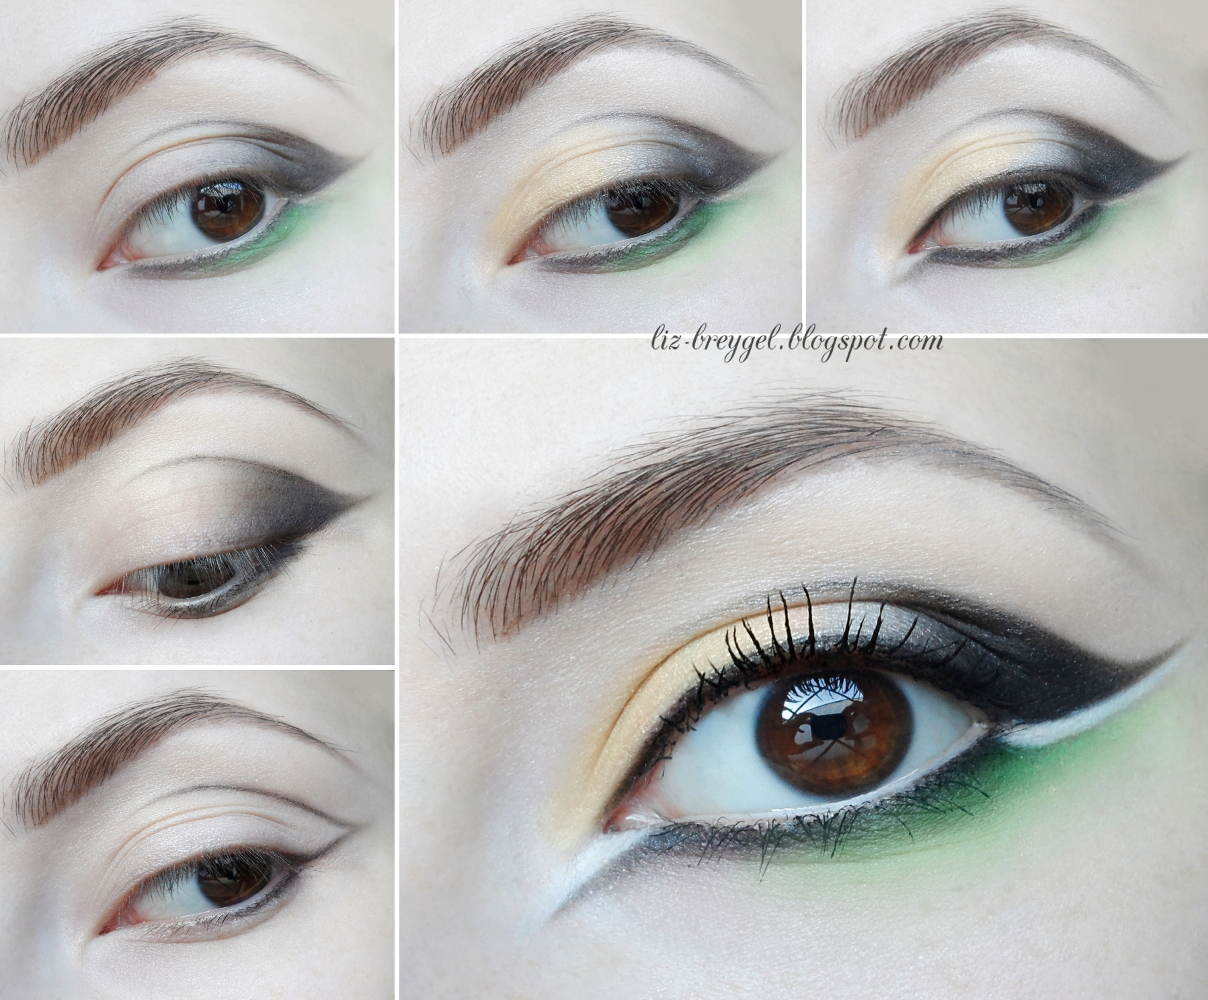 black and green makeup tutorial, step by step evening makeup, double eyeliner